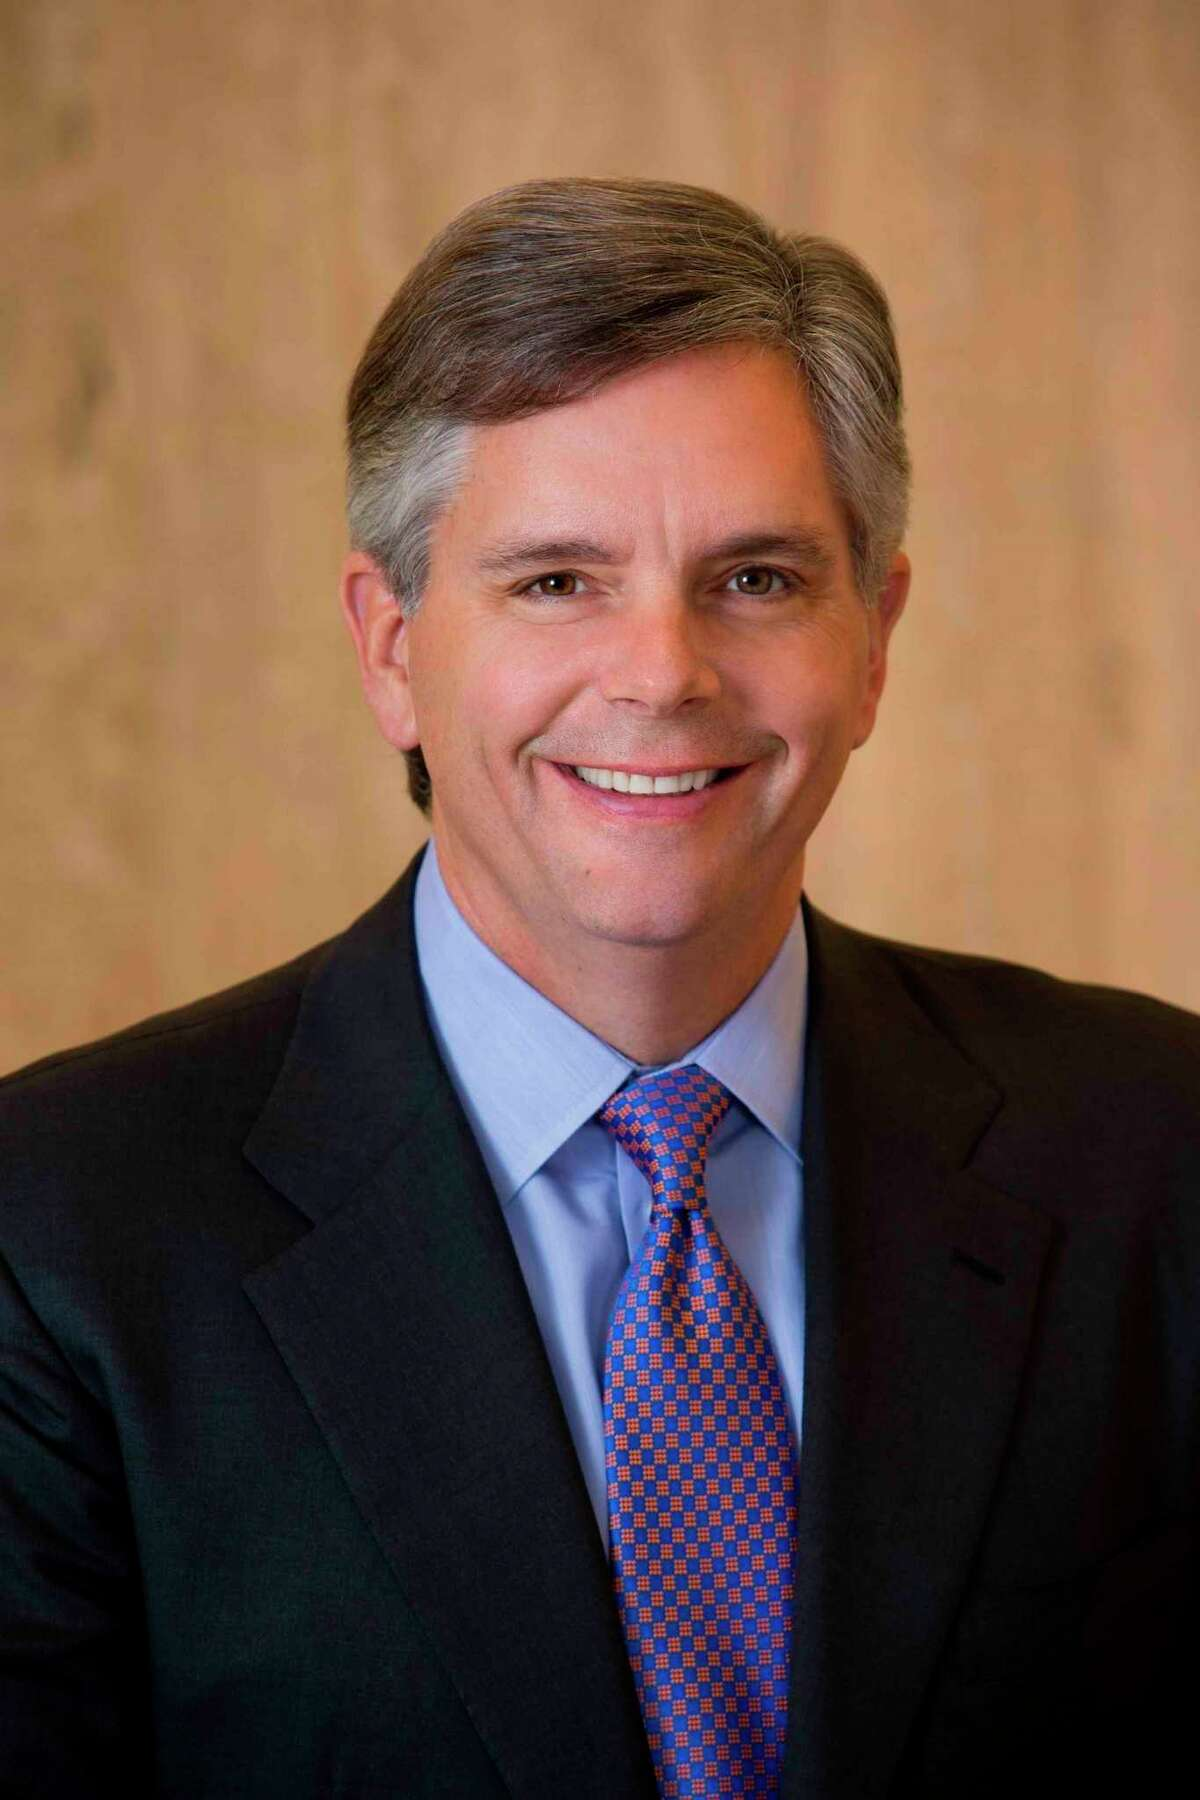 This undated photo provided by T. Rowe Price shows H. Lawrence Culp Jr., who was named chairman and CEO of General Electric on Monday, Oct. 1, 2018. The 55-year-old Culp was CEO and president of Danaher Corp. from 2000 to 2014. During that time, Danaher's market capitalization and revenues grew five-fold. He's already a member of GE's board. (T. Rowe Price via AP)